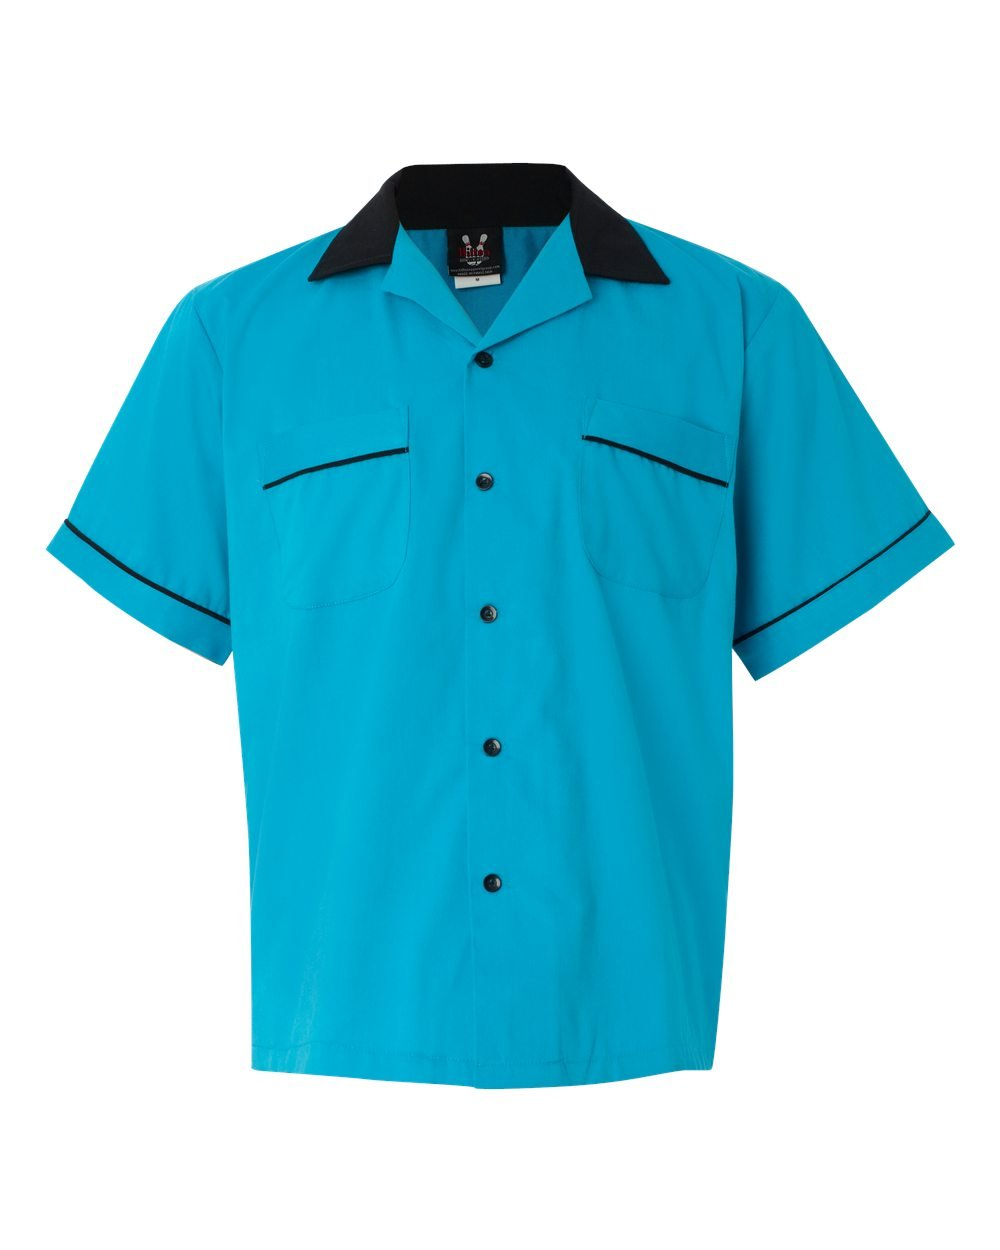 Hilton Bowling Retro GM Legend, Turquoise/Black, Large by Hilton